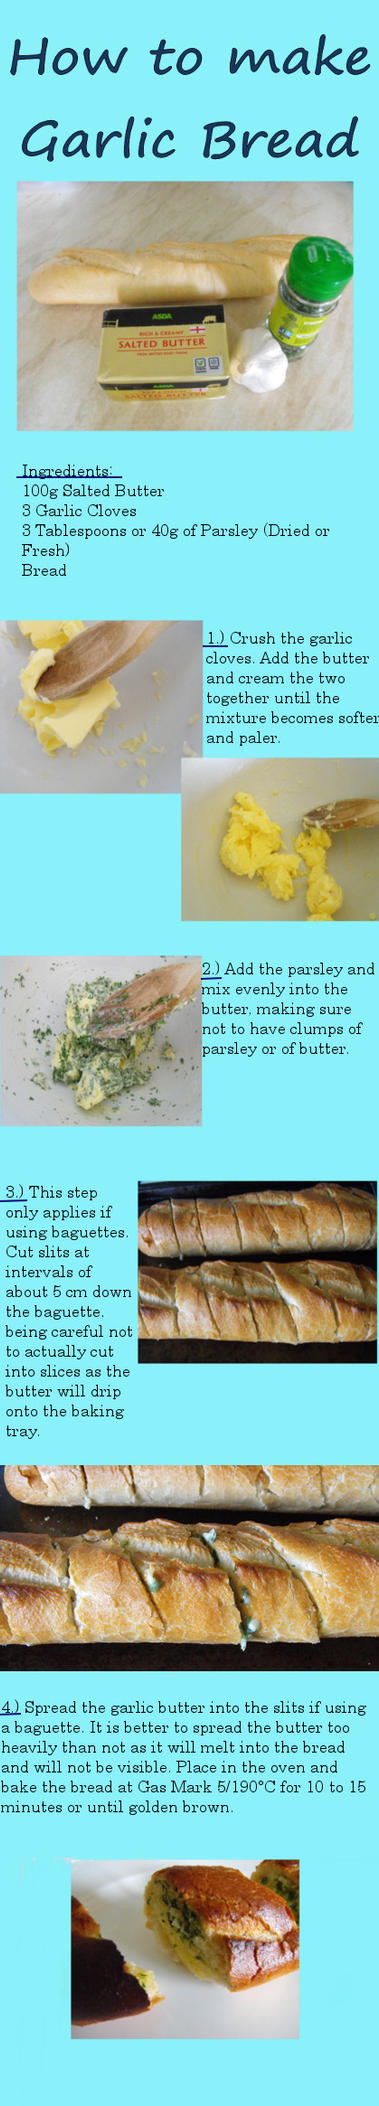 How to make Garlic Bread by Lotte-Holmes